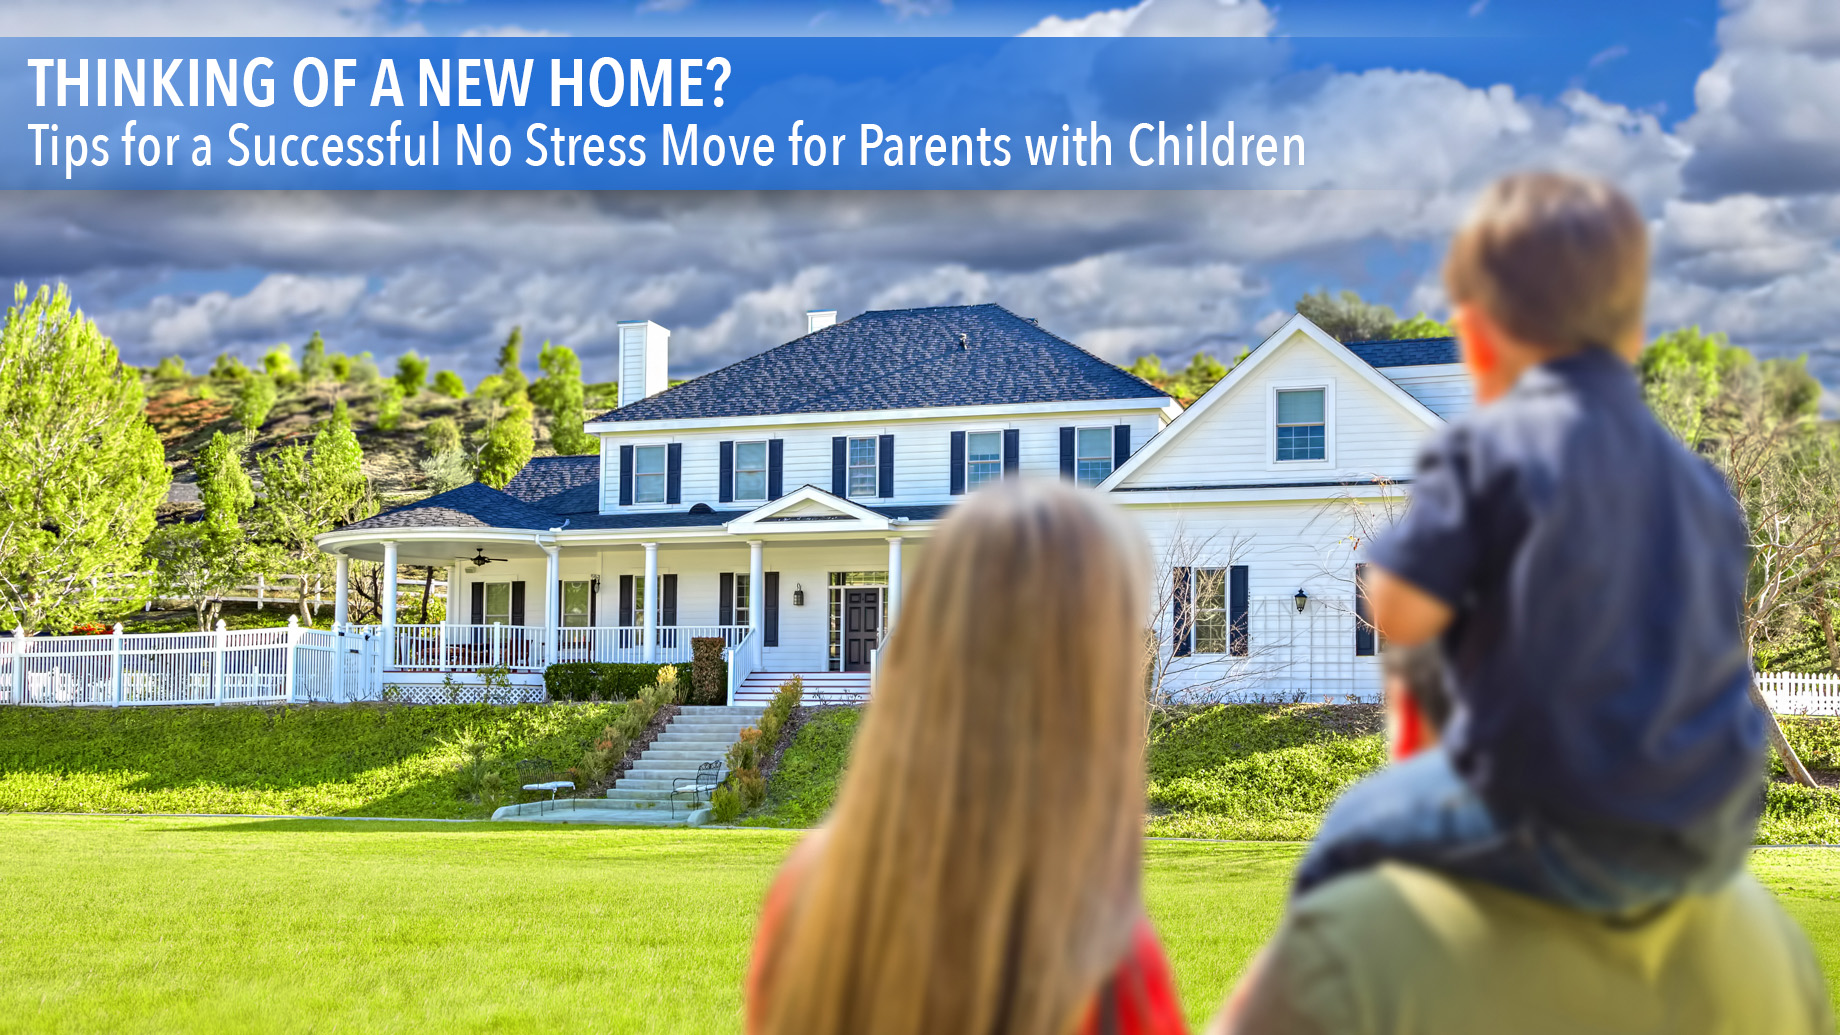 Thinking of a New Home? - Tips for a Successful No Stress Move for Parents with Children